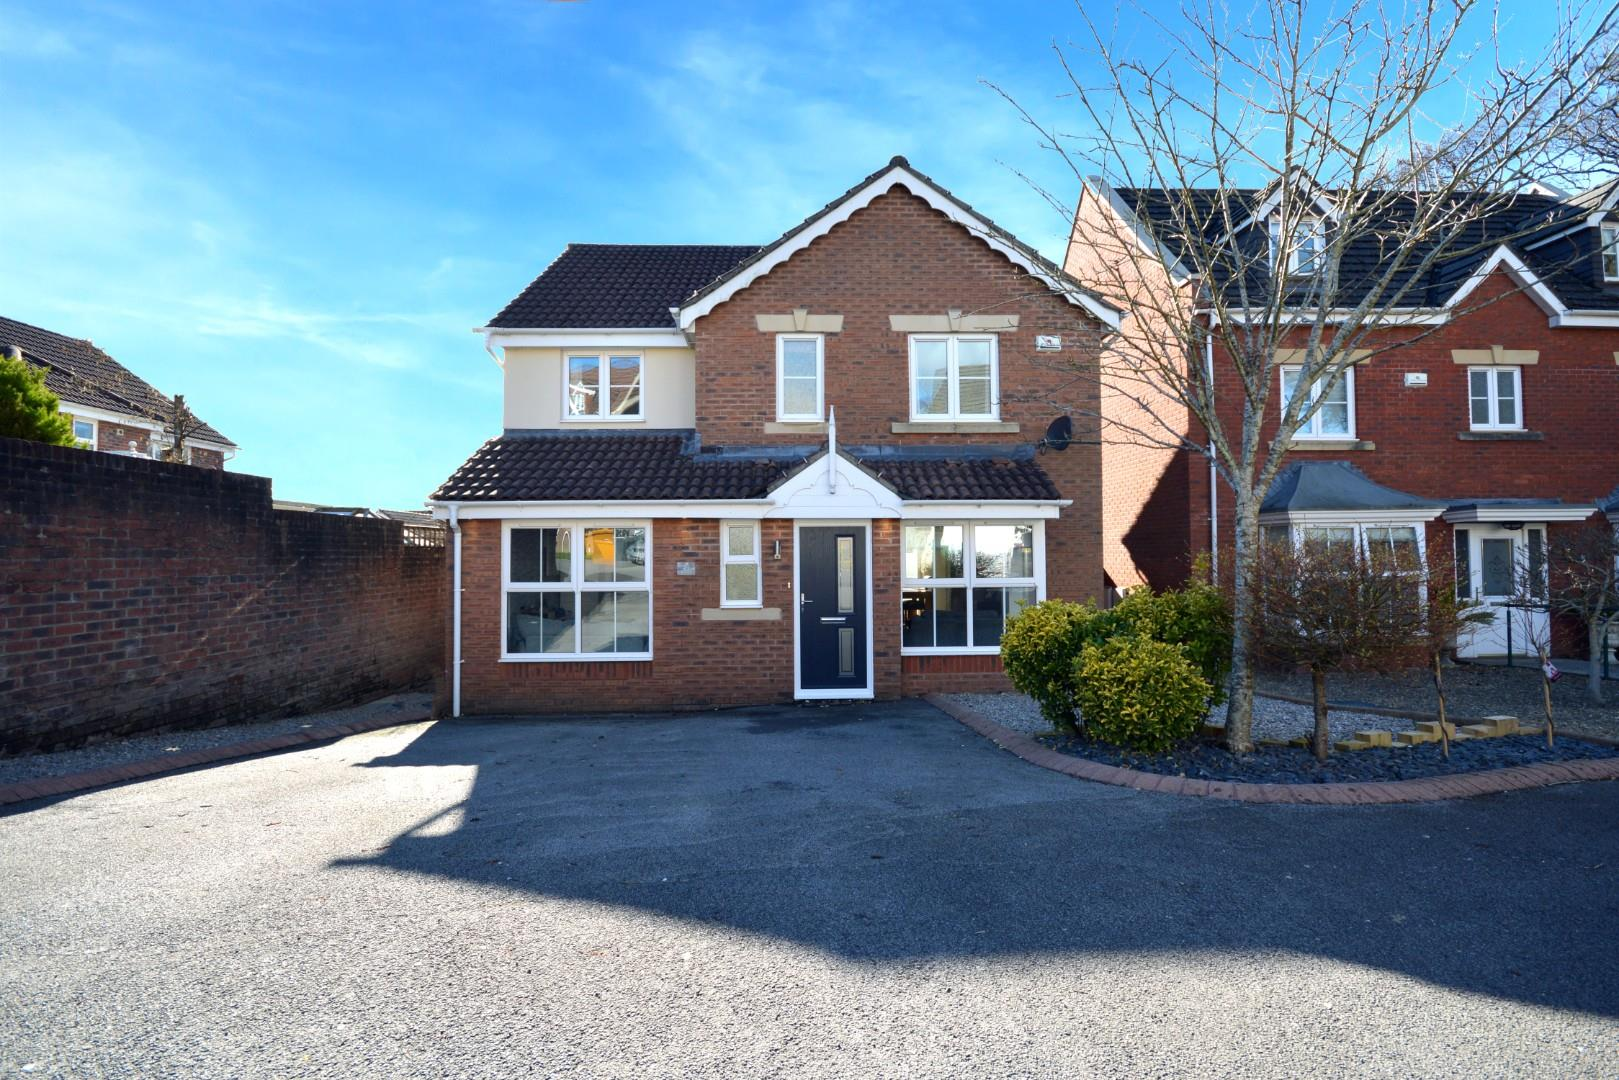 4 bed detached house for sale in Llewelyn Goch, Cardiff, CF5